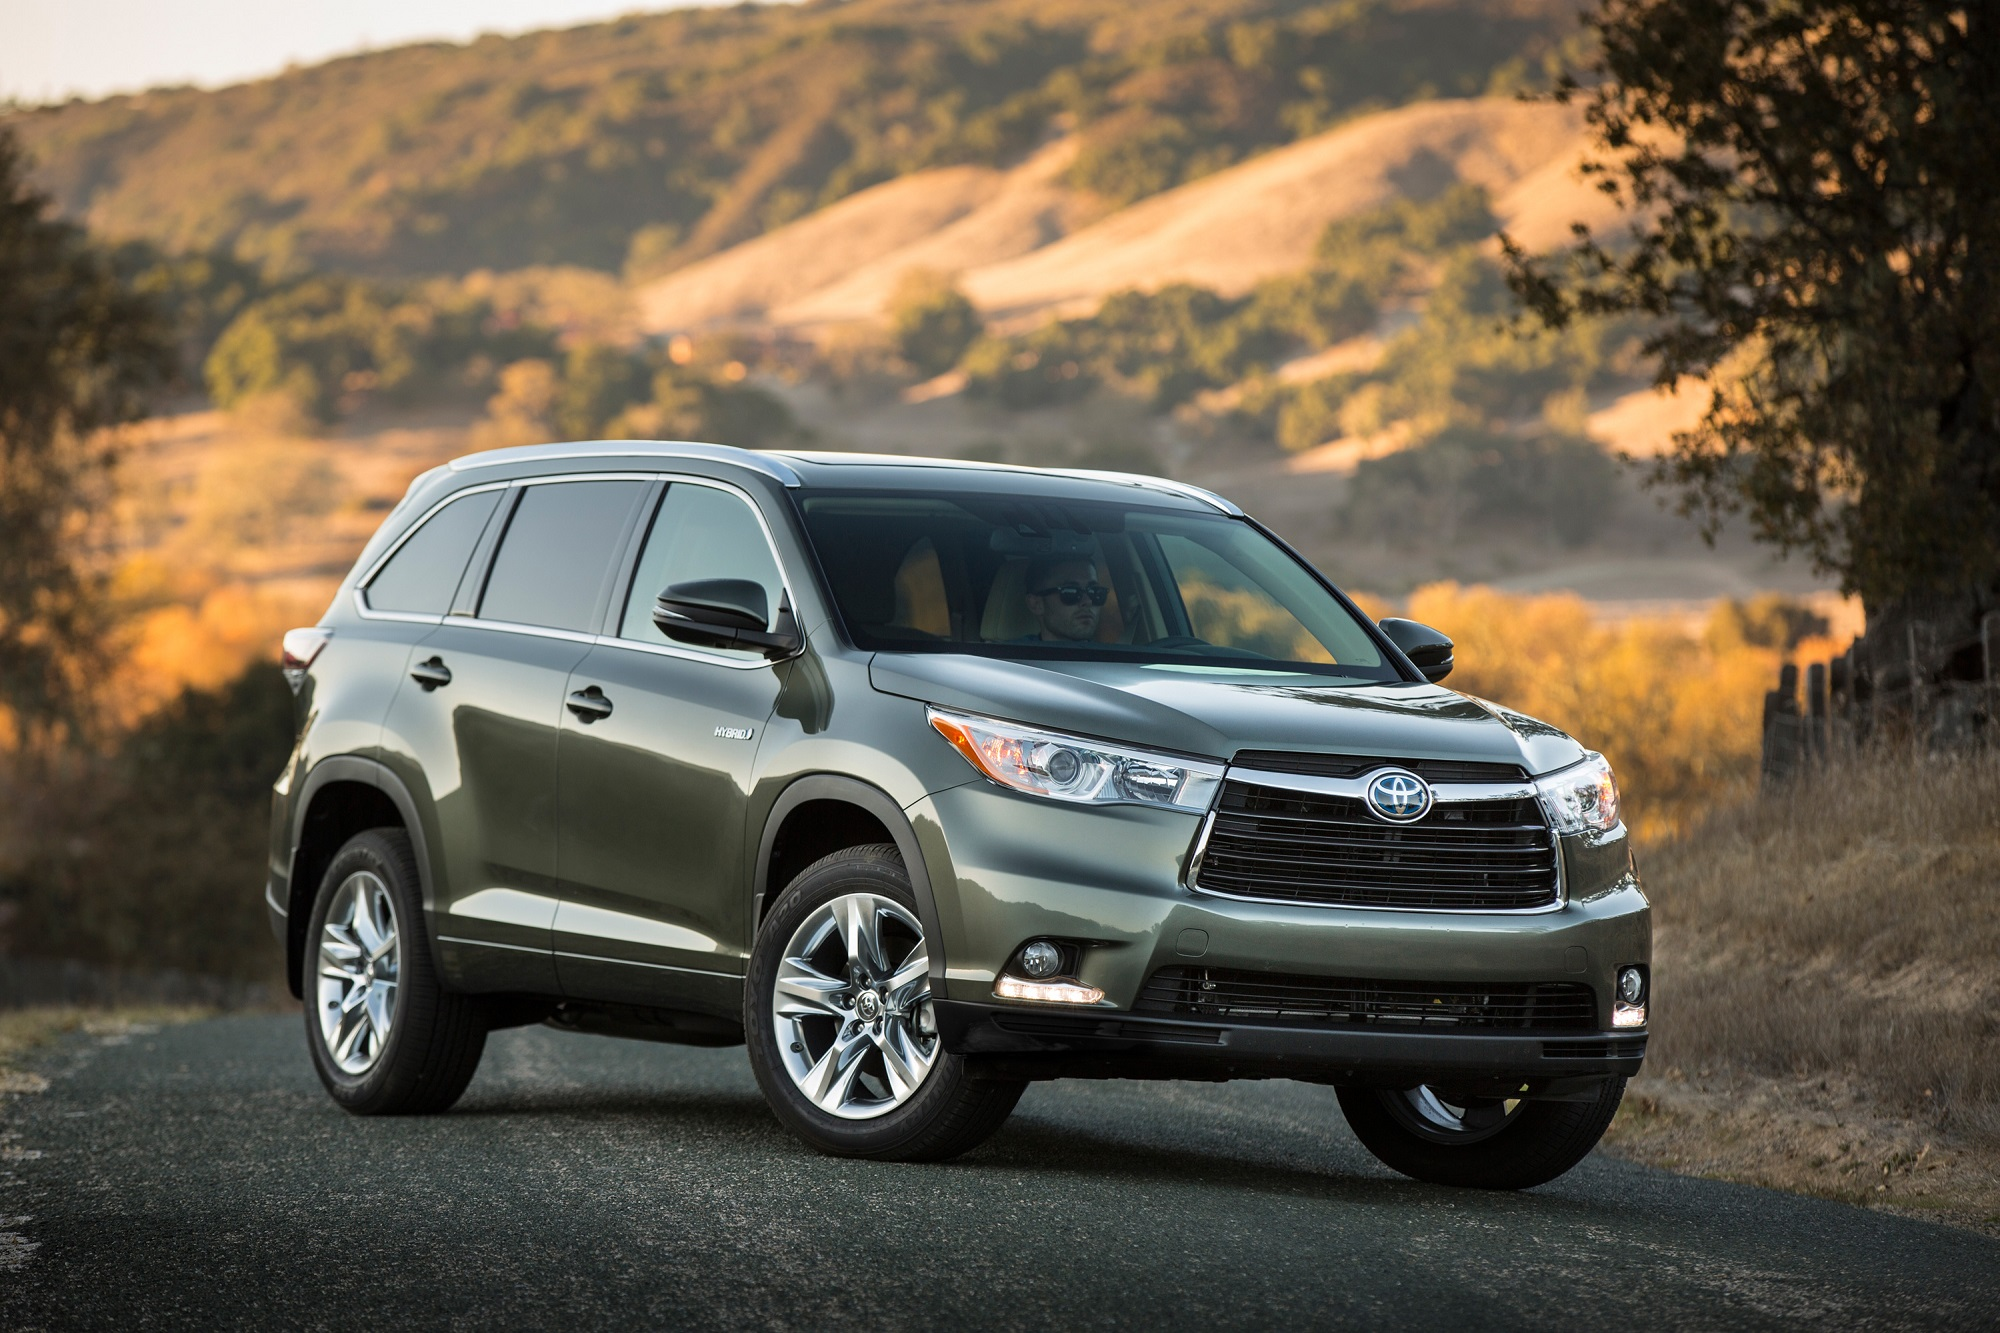 One Thing To Know About The 2016 Toyota Highlander Hybrid Is That The Base  Trim Will Cost You More Than The Top Trim On The Gasoline Only Highlander.